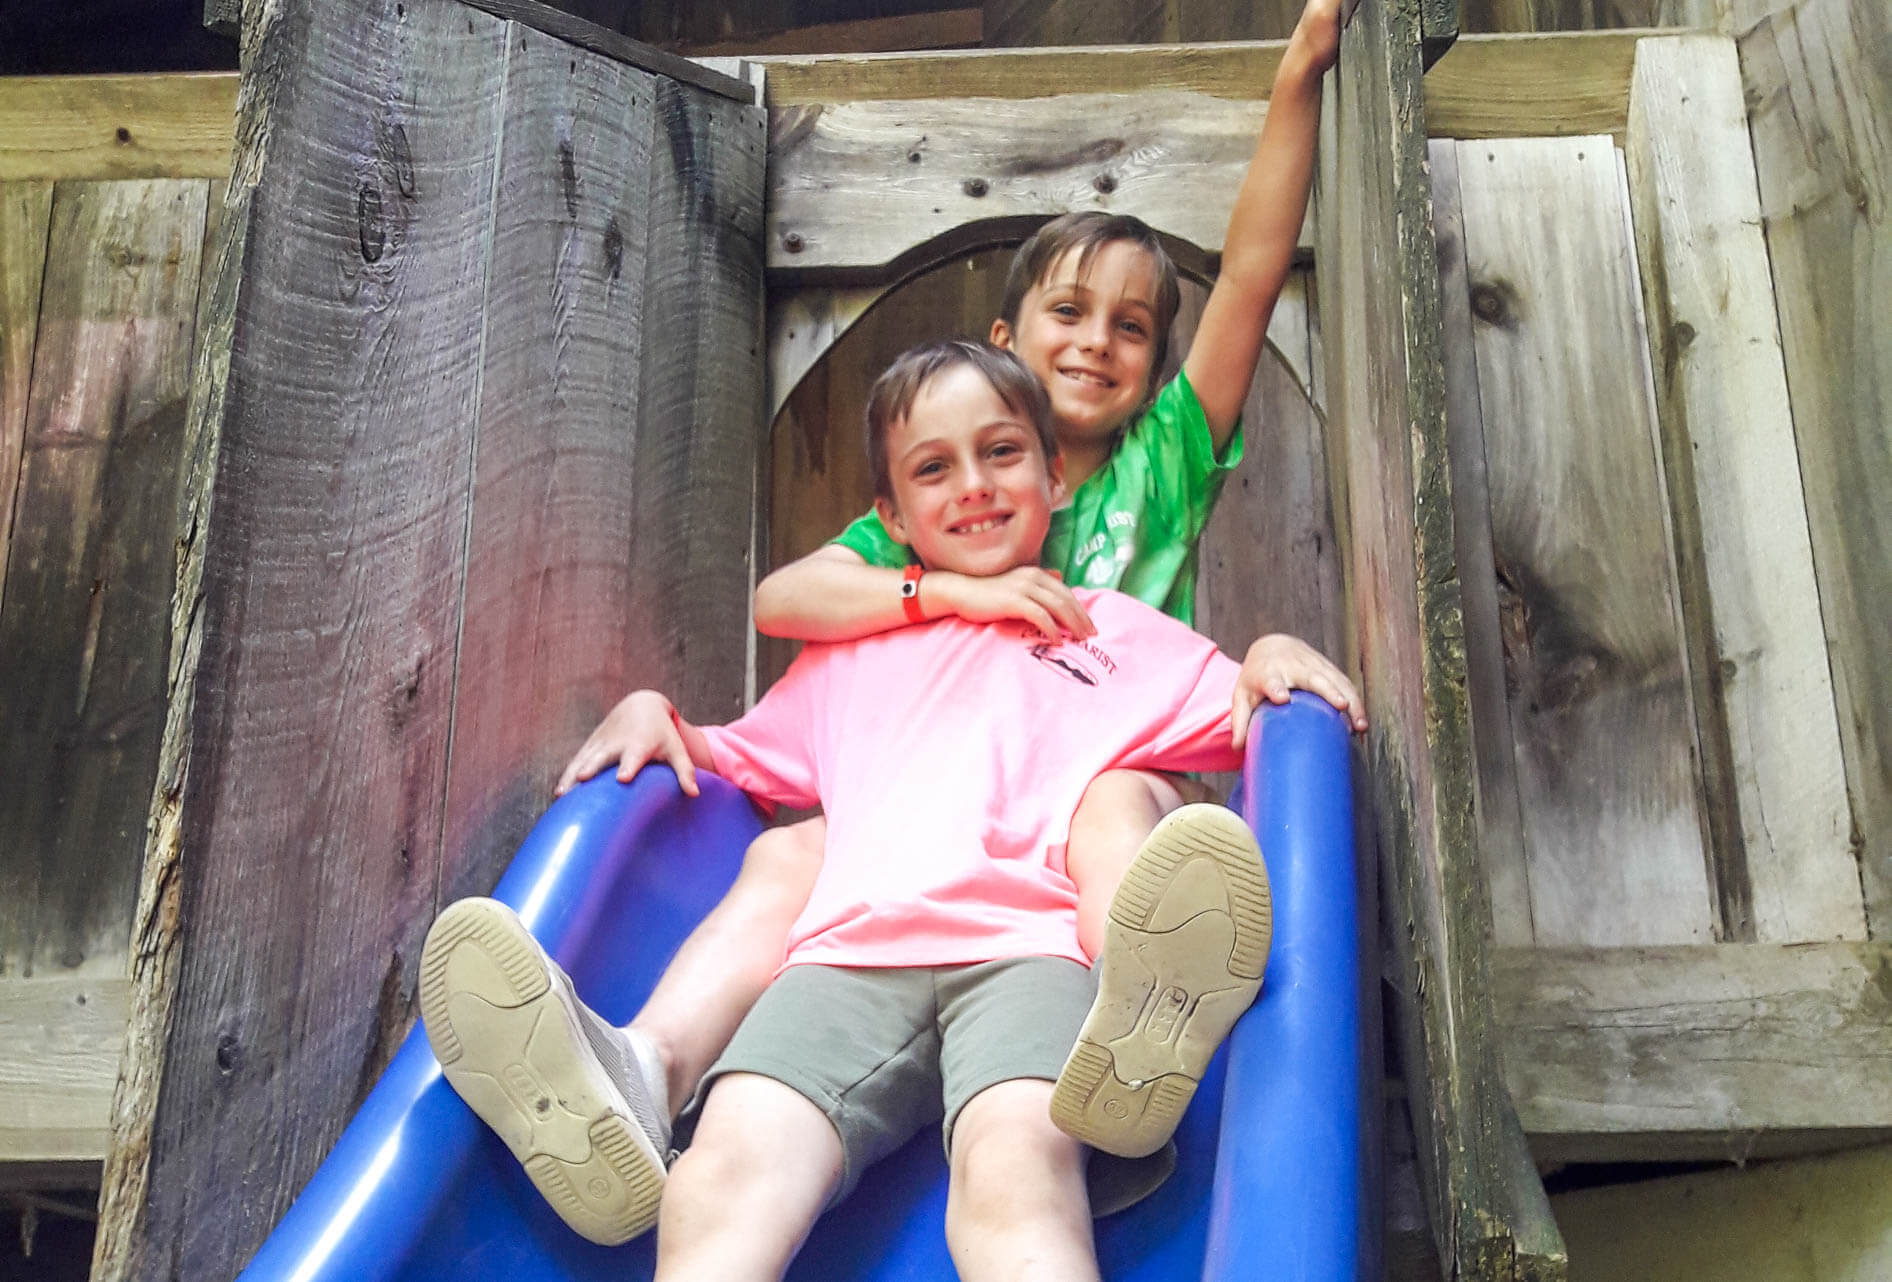 Two campers go down slide